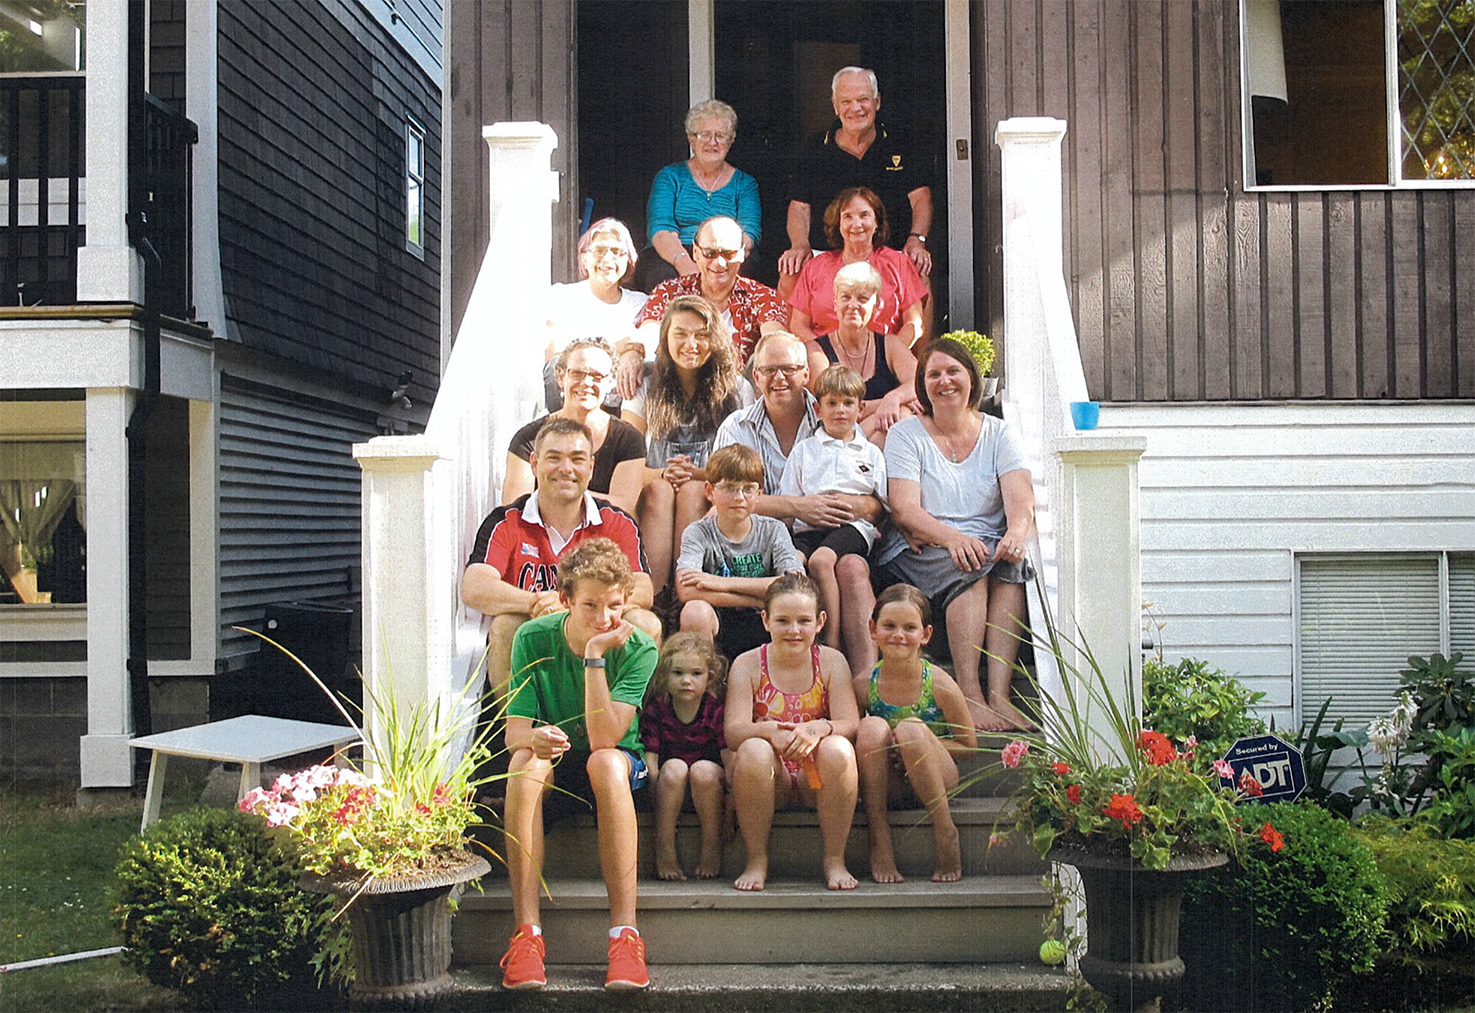 All of the whānau together. Back row, Rosalie and Donald. Fourth row, Marilyn, Rewi and Dorothy. Third row, Katherine, Nepeya, Peter, Oliver, Judith and Leanne. Second row, Ian and Evan. Front row, Kalan, Kirianne, Kara and Maren.